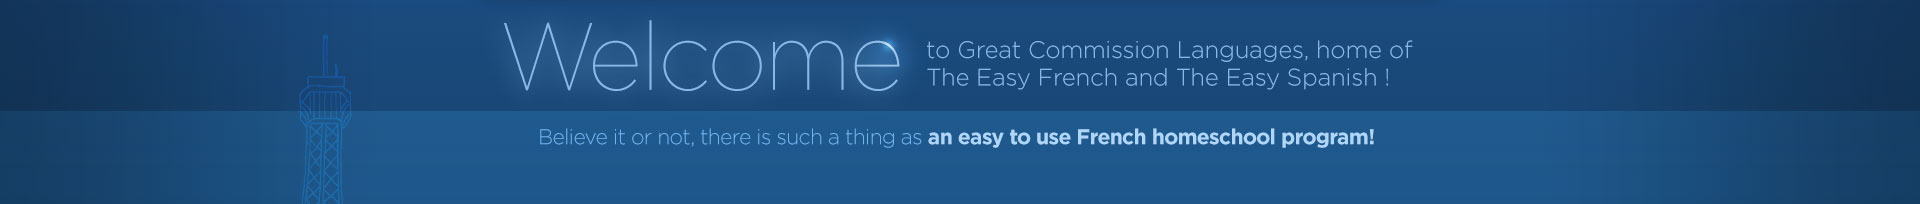 Welcome to Great Commission Languages, home of The Easy French and The Easy Spanish